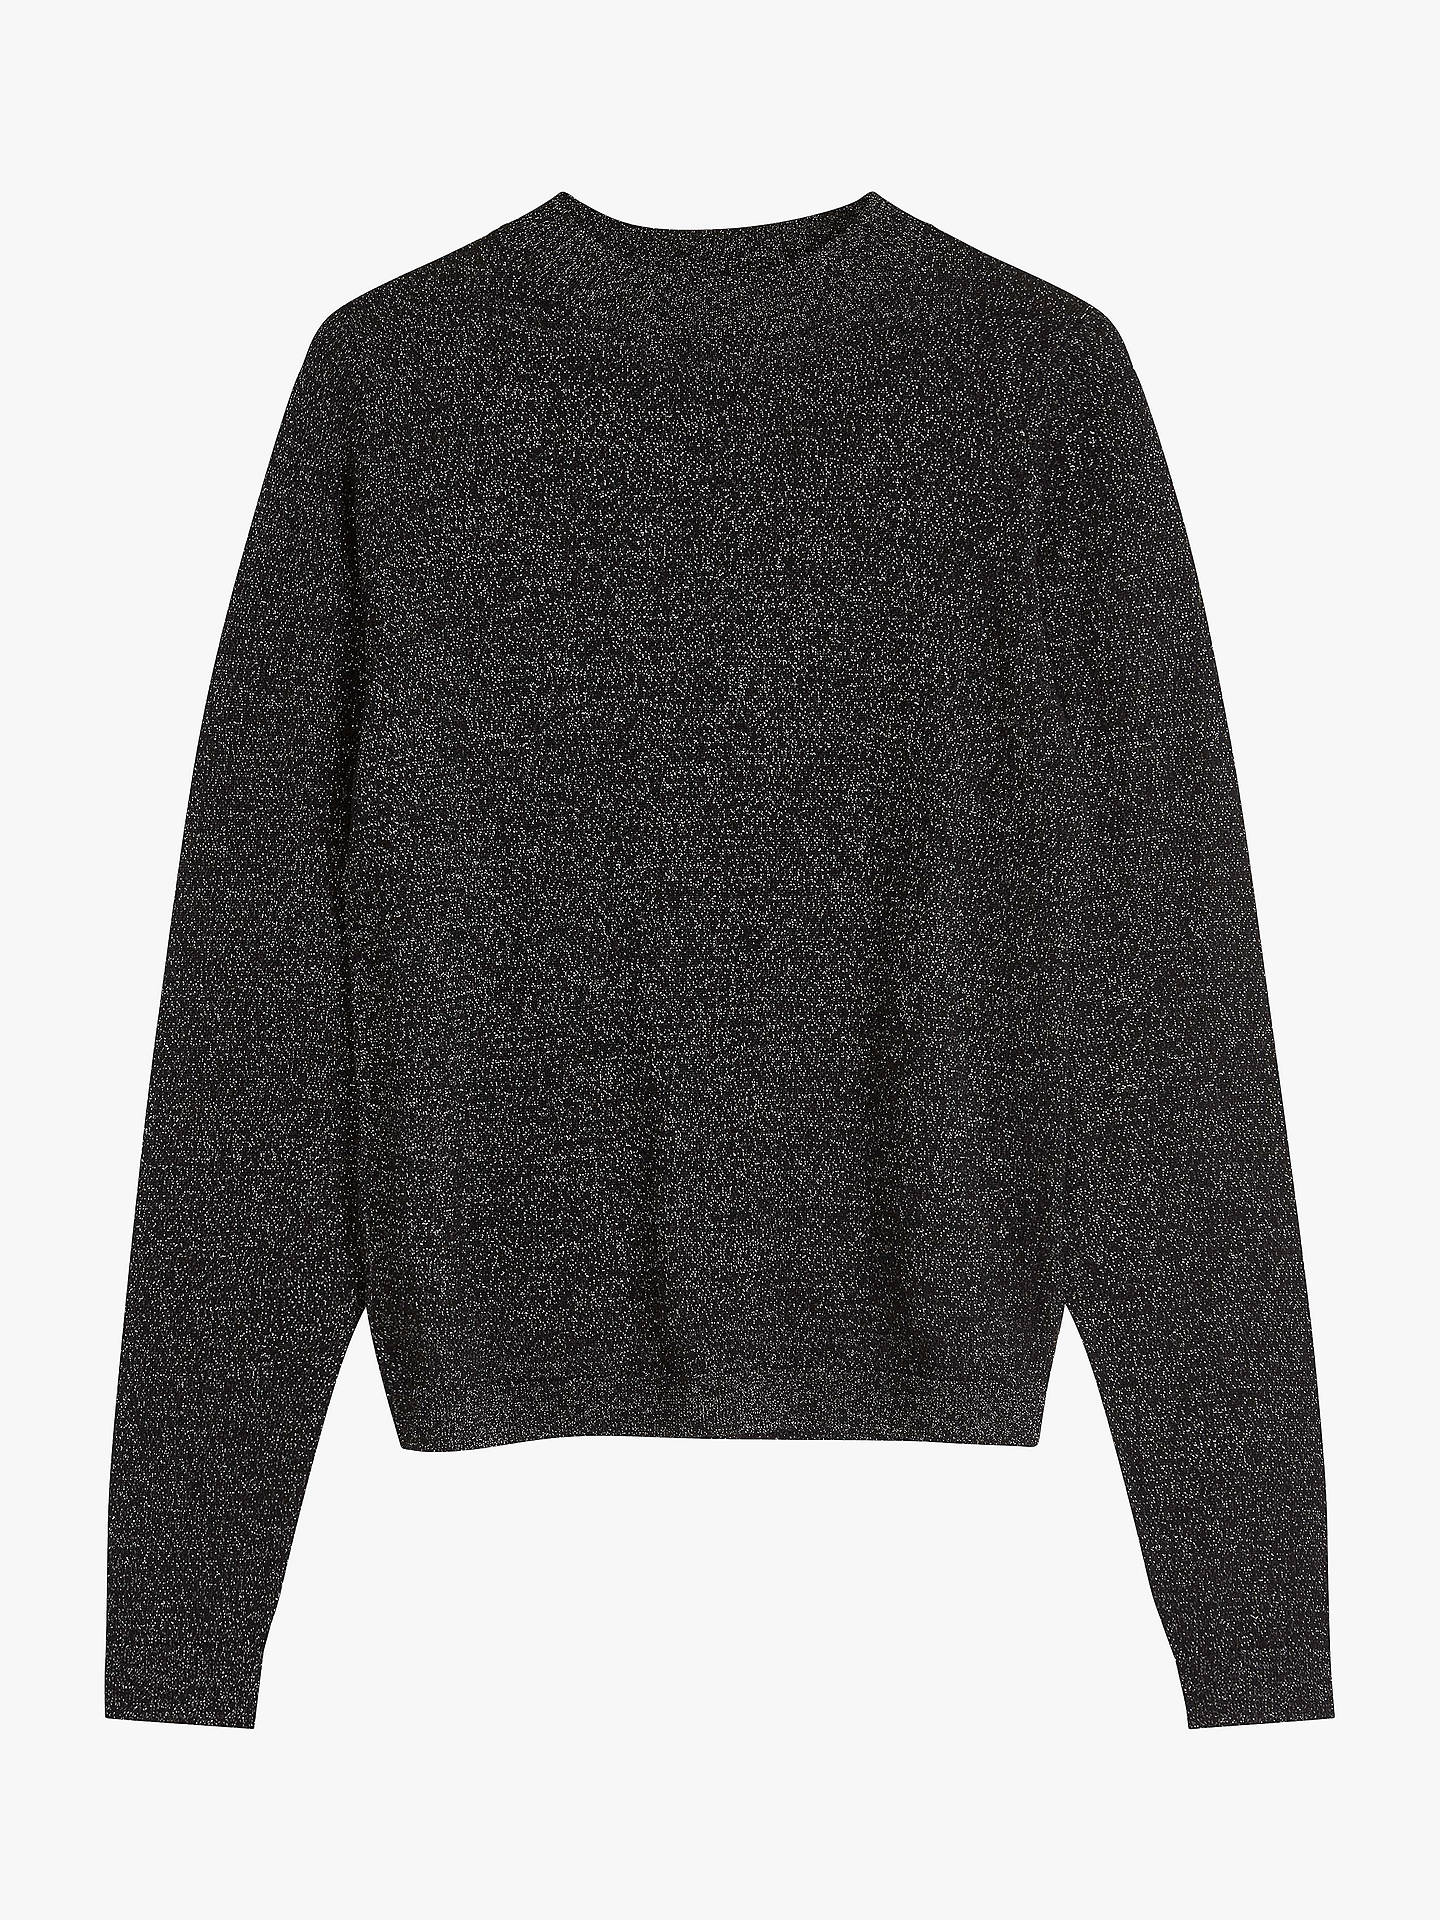 Buy Brora Merino Wool Blend Sparkle Jumper, Black, 10 Online at johnlewis.com